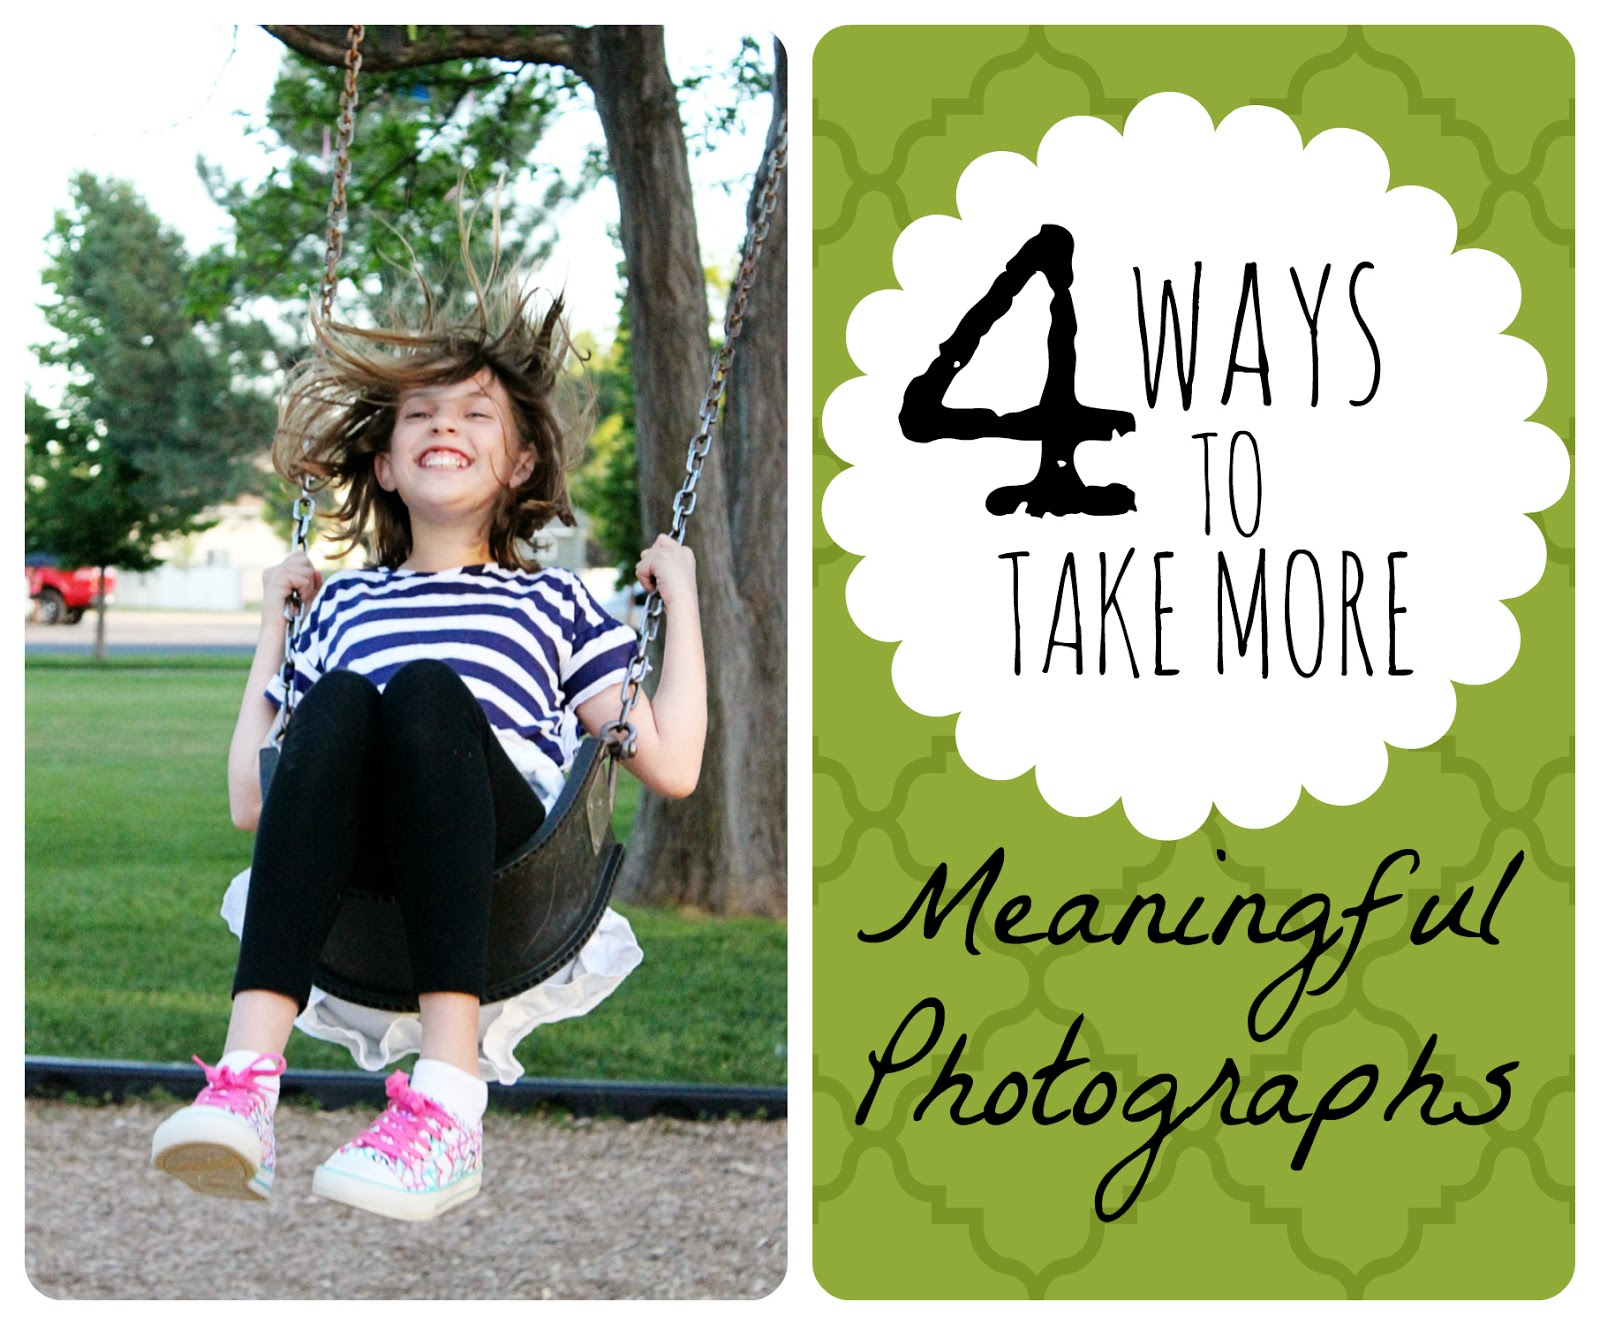 ways to take more meaningful photos, meaning to photographs, photo tips, preserving memories